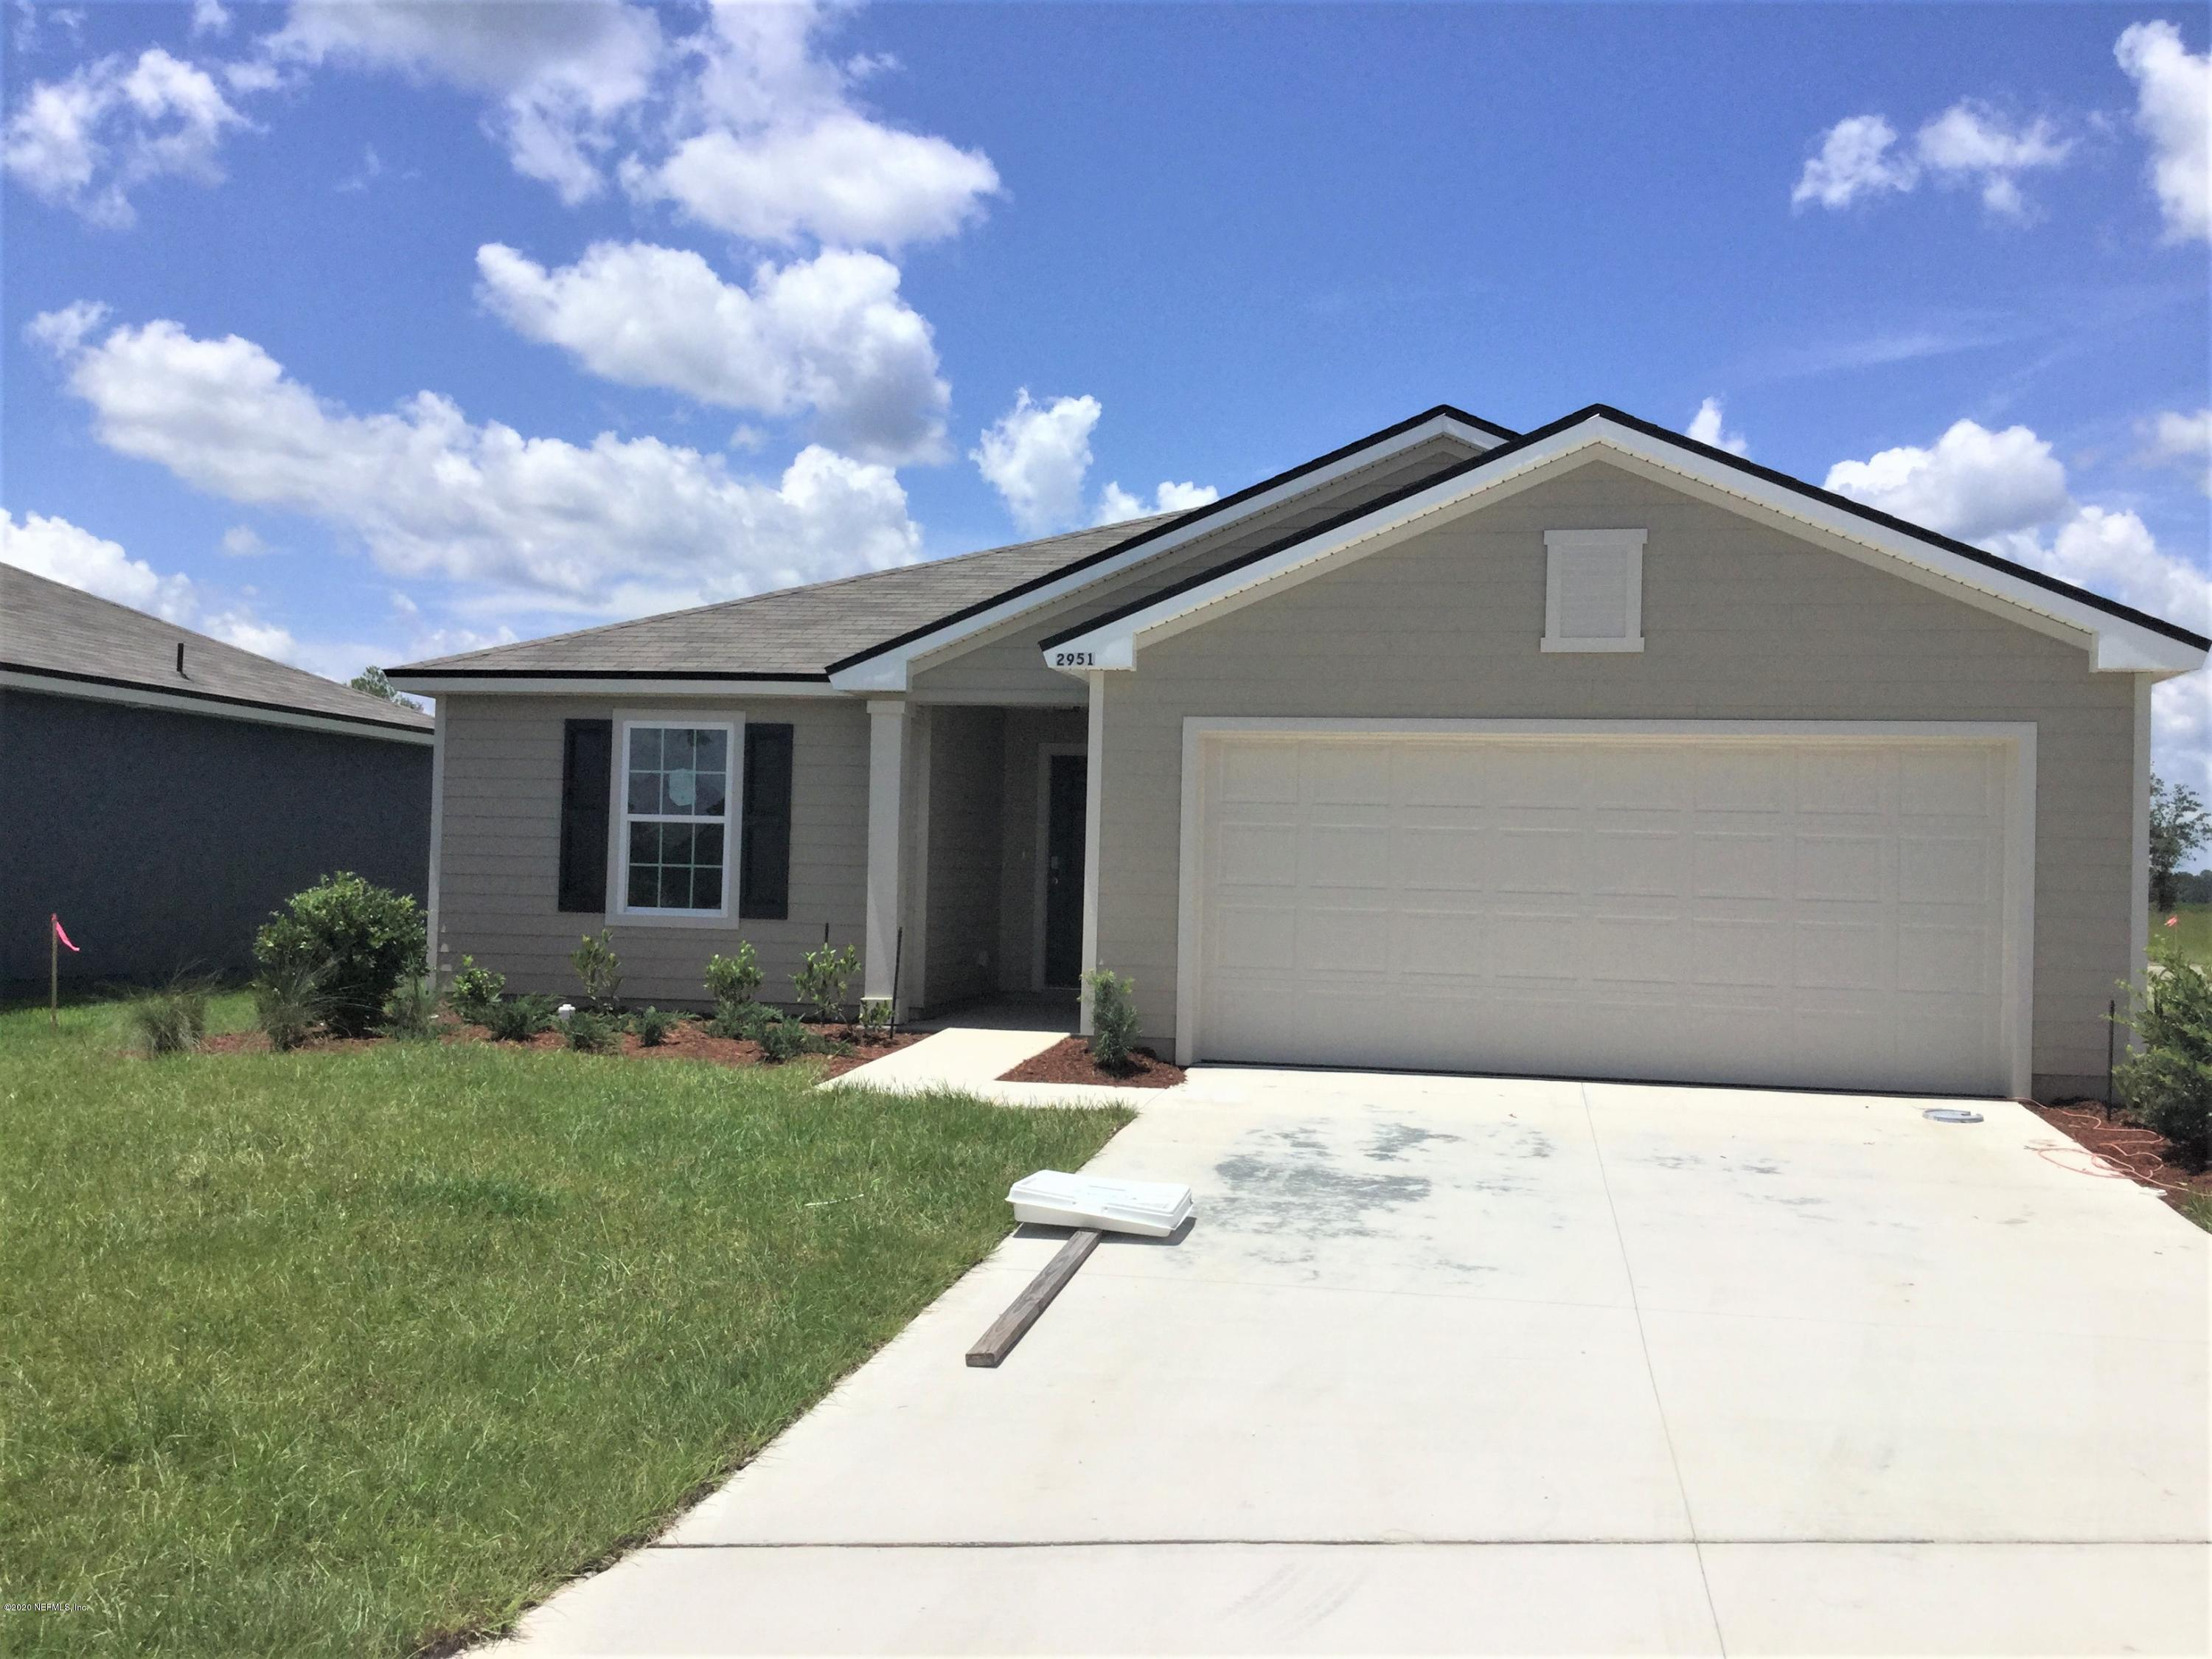 Photo for 2951 Little Creek CT, GREEN COVE SPRINGS, FL 32043 (MLS # 1046576)